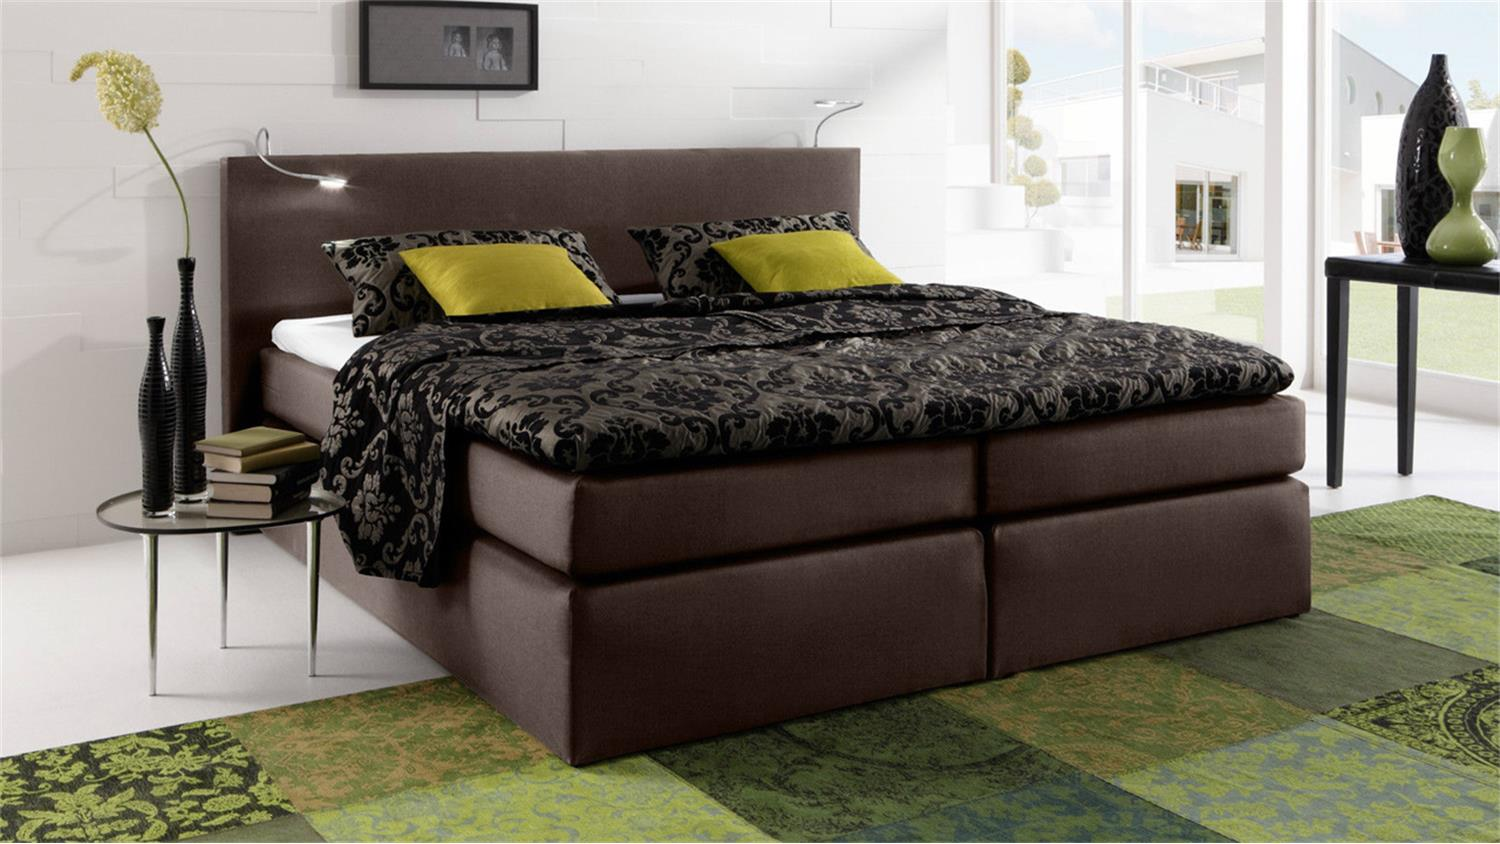 boxspringbett atlanta stoff braun 160x200 cm mit topper. Black Bedroom Furniture Sets. Home Design Ideas